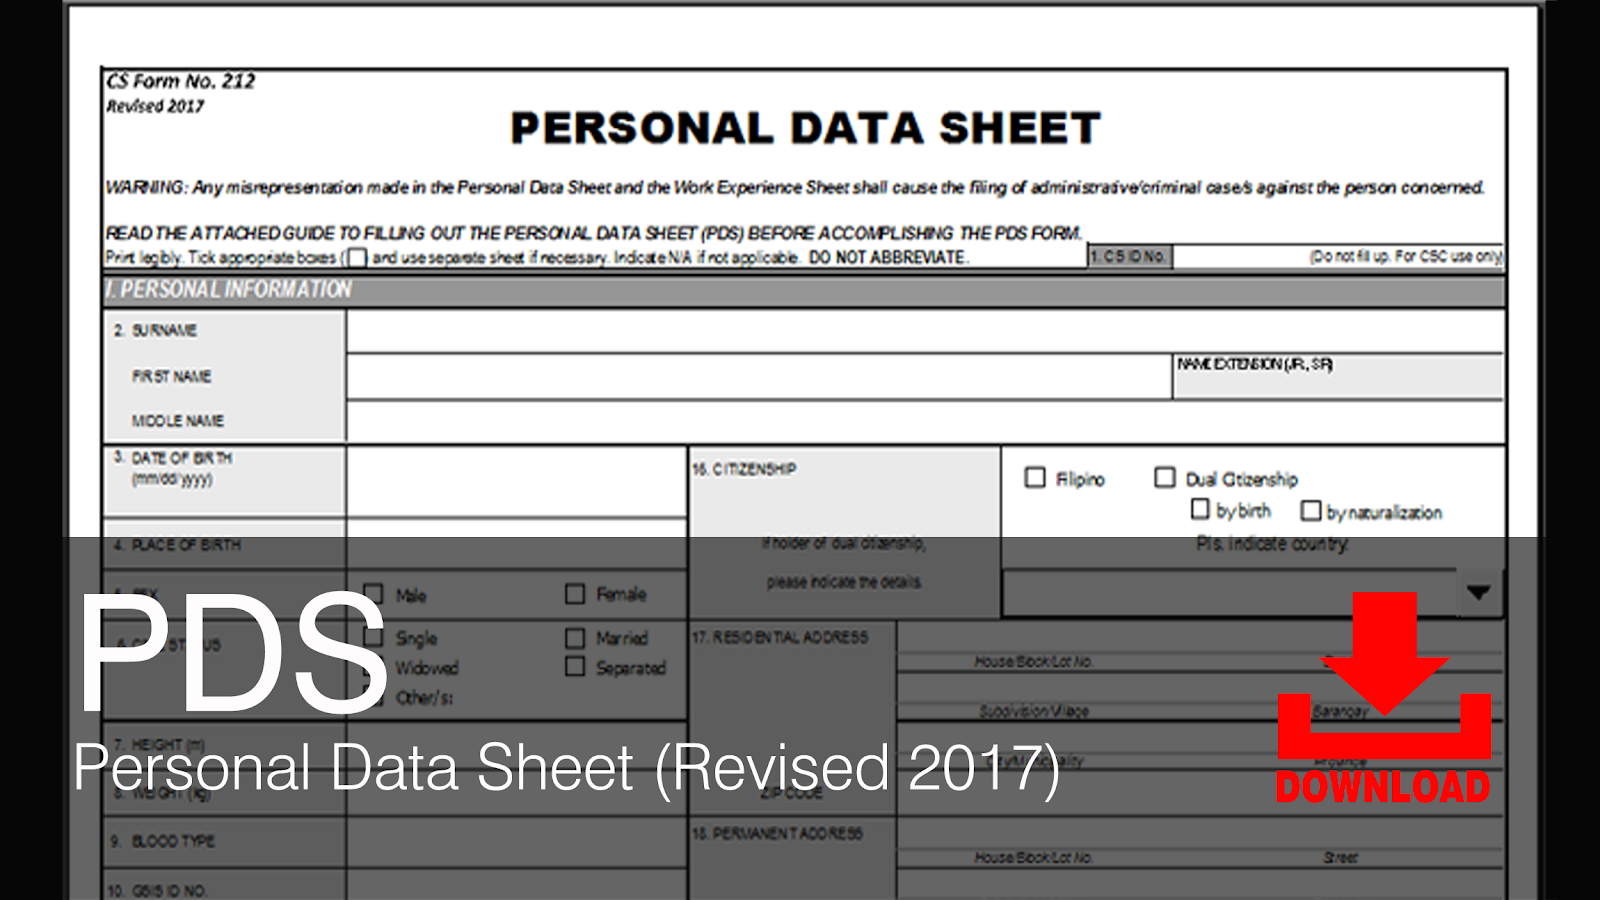 Civil Service Exam Ph Downloads Pds Personal Data Sheet Csc Form 212 Revised